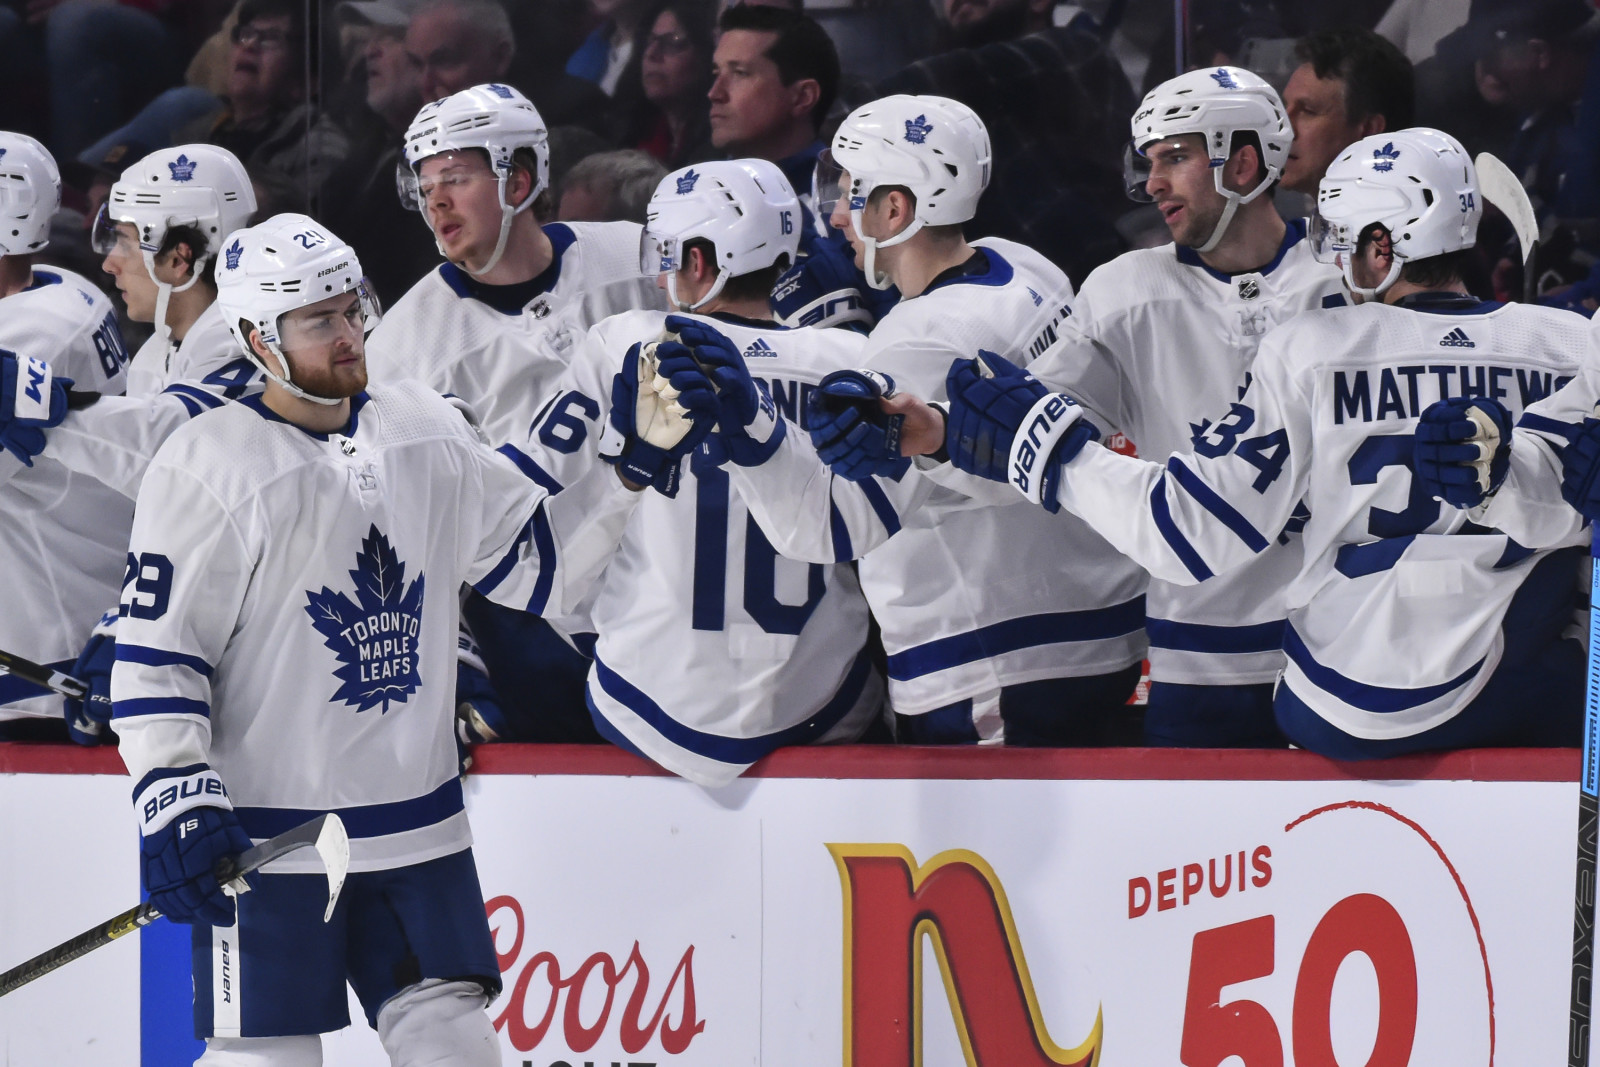 Ignore The Media, The Toronto Maple Leafs Are Contenders